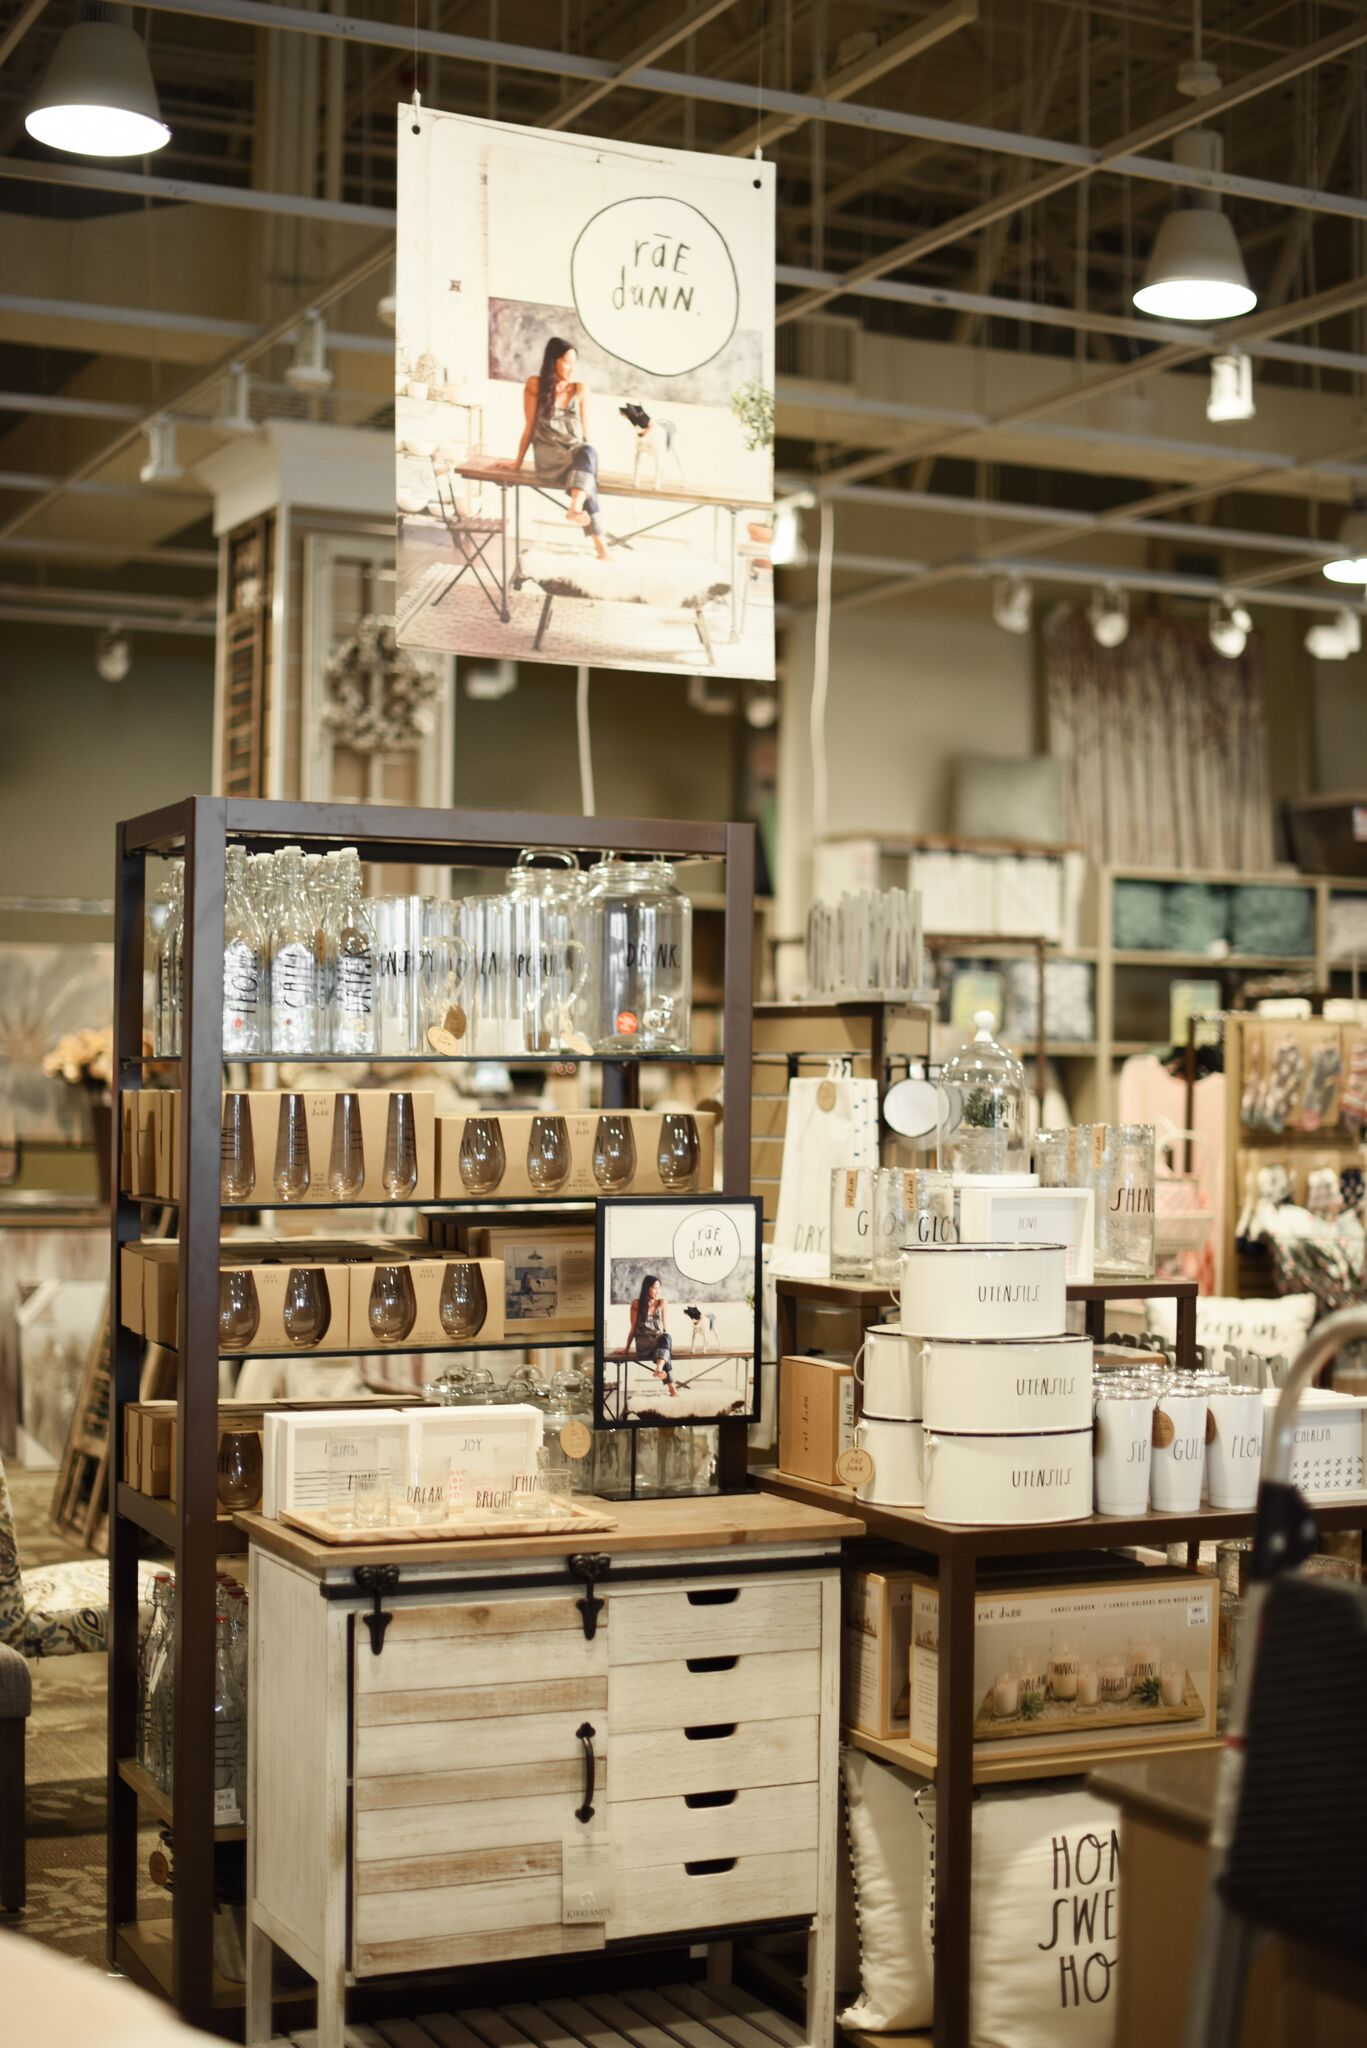 Why Kirkland's? - With products already available in plenty of stores, why the partnership between Rae Dunn and Kirkland's? In her mind, it's a perfect match.